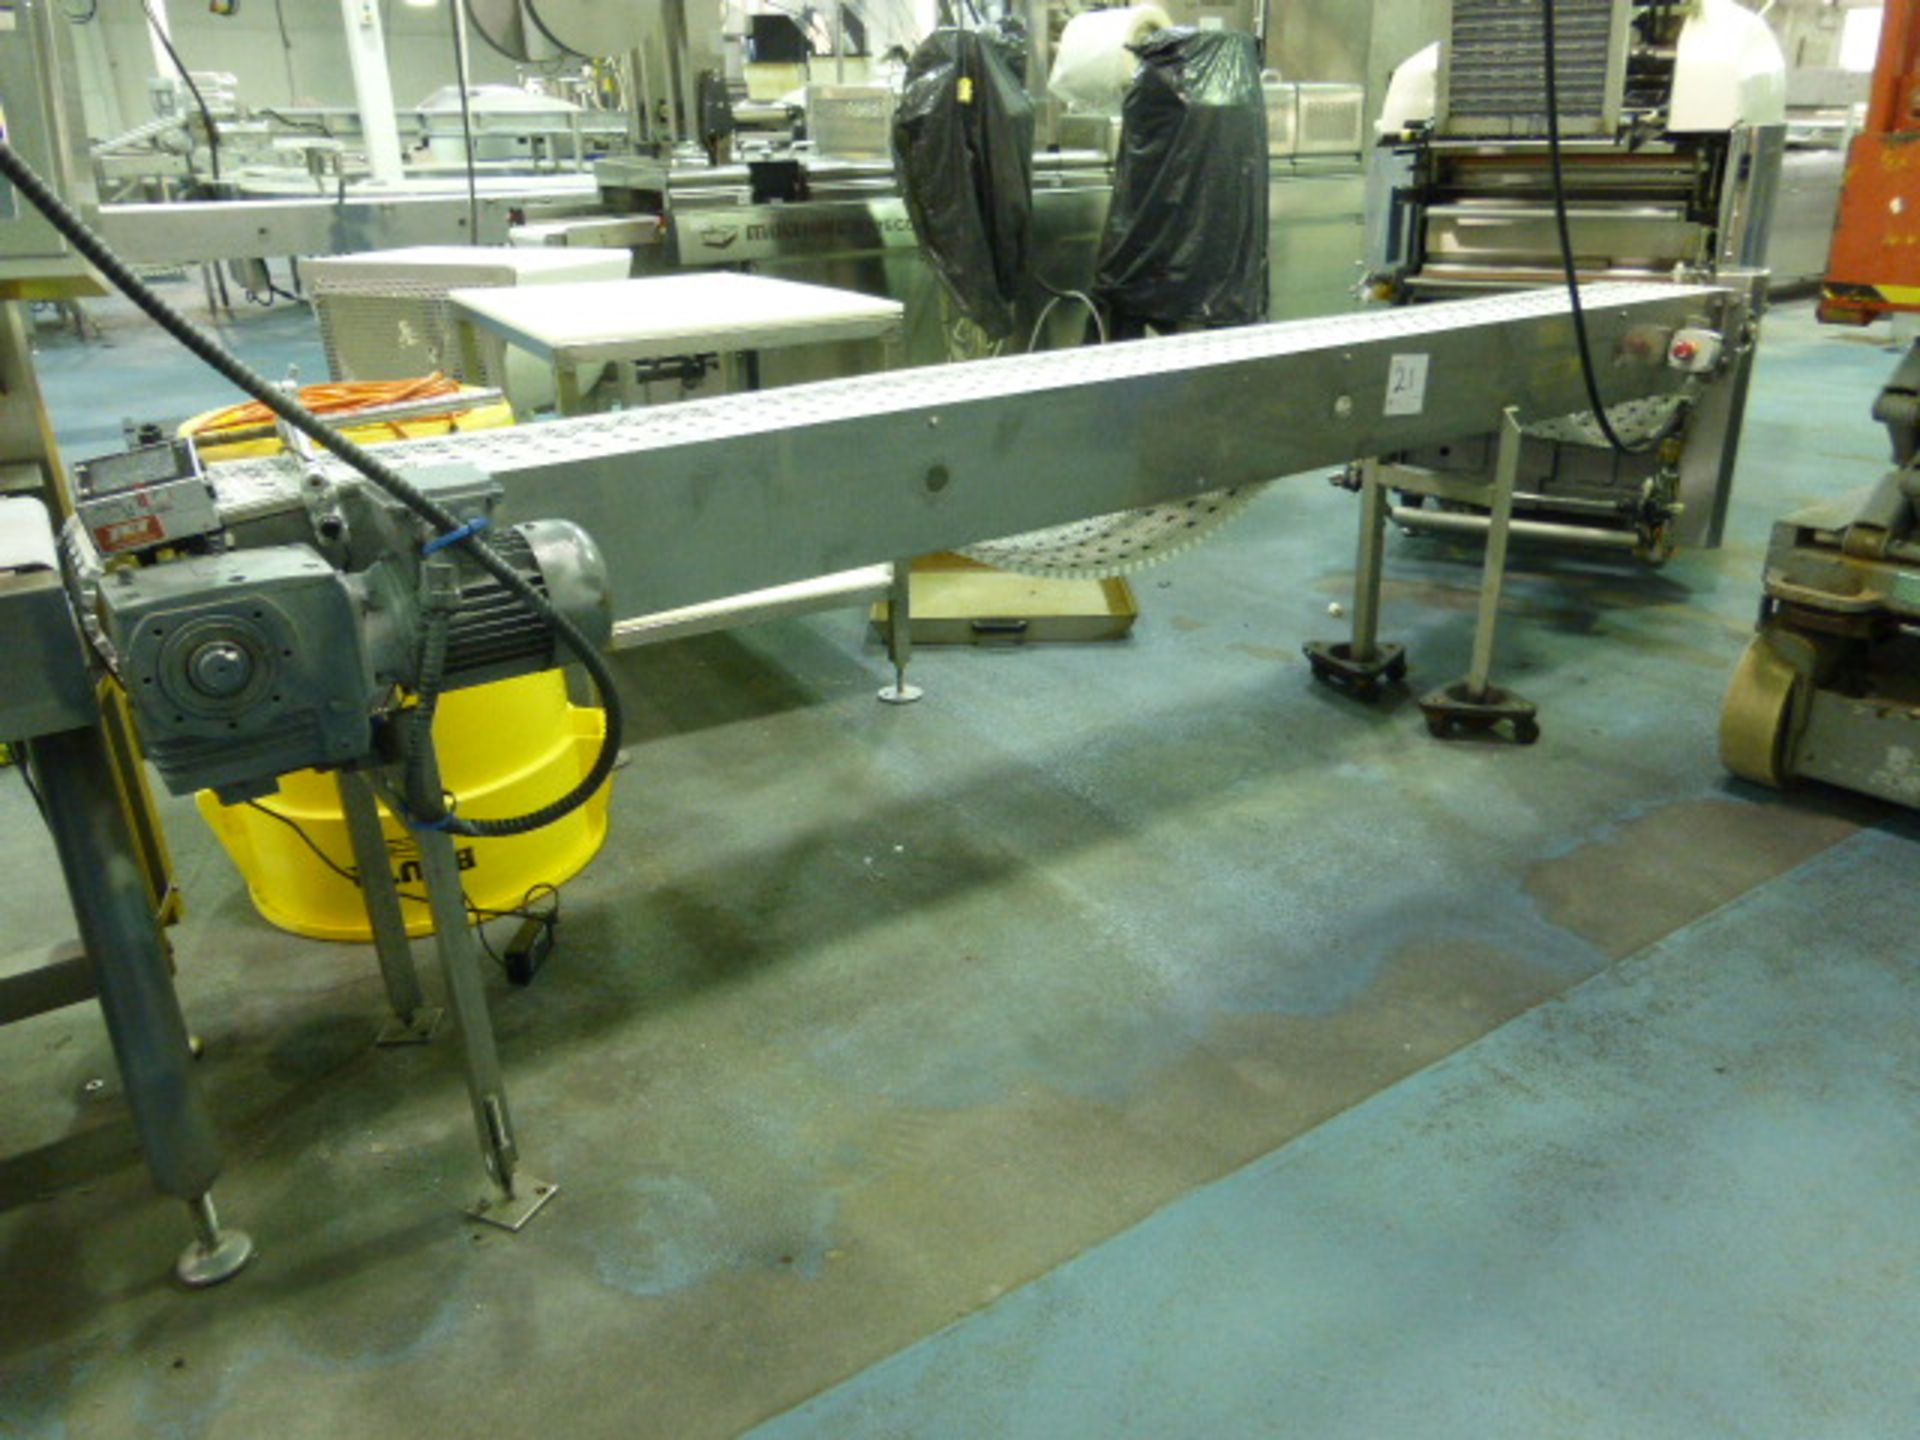 Lot 21 - s/s transfer conveyor with plastic belting, 8 in. x 12 ft.